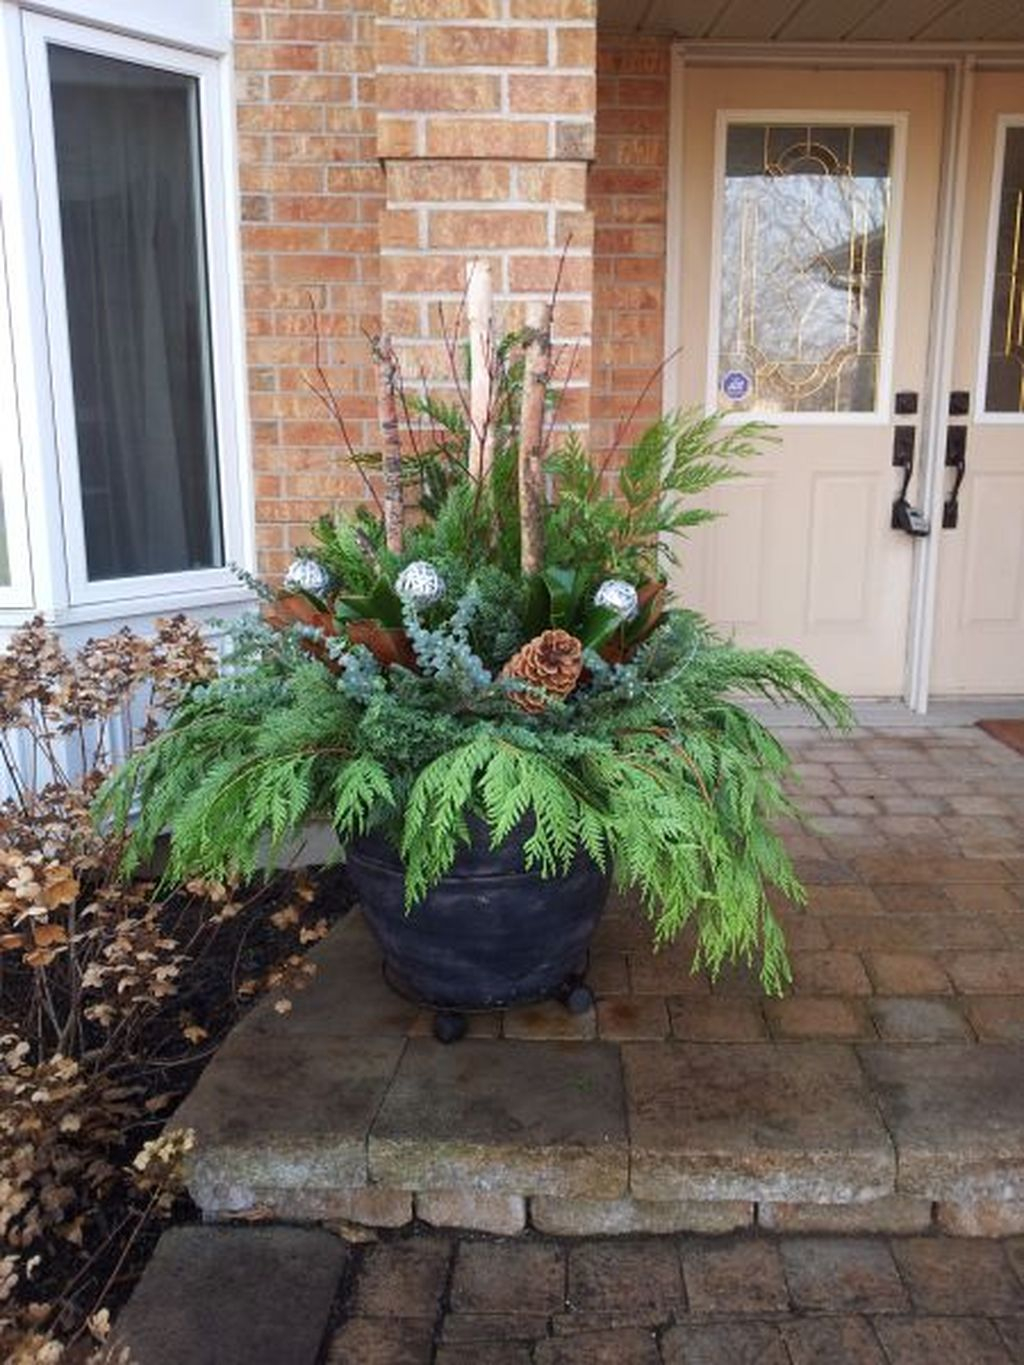 Marvelous Outdoor Holiday Planter Ideas To Beauty Porch Décor 40